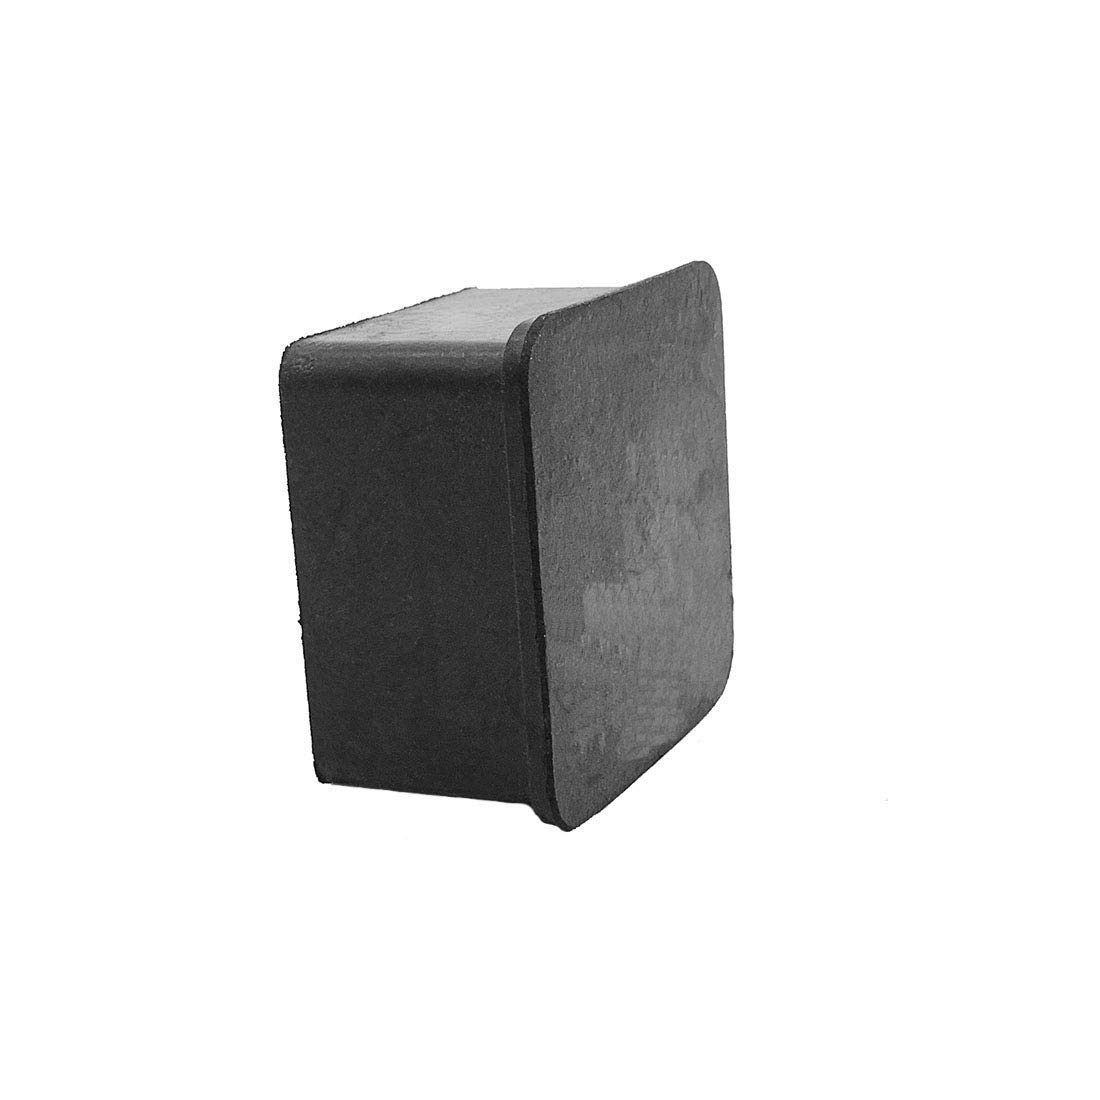 Flyshop Chair Leg Caps Furniture Table Covers Floor Protectors Non-Slip Rubber Square Legs 4 Pack,50mm,2 inch by Flyshop (Image #8)